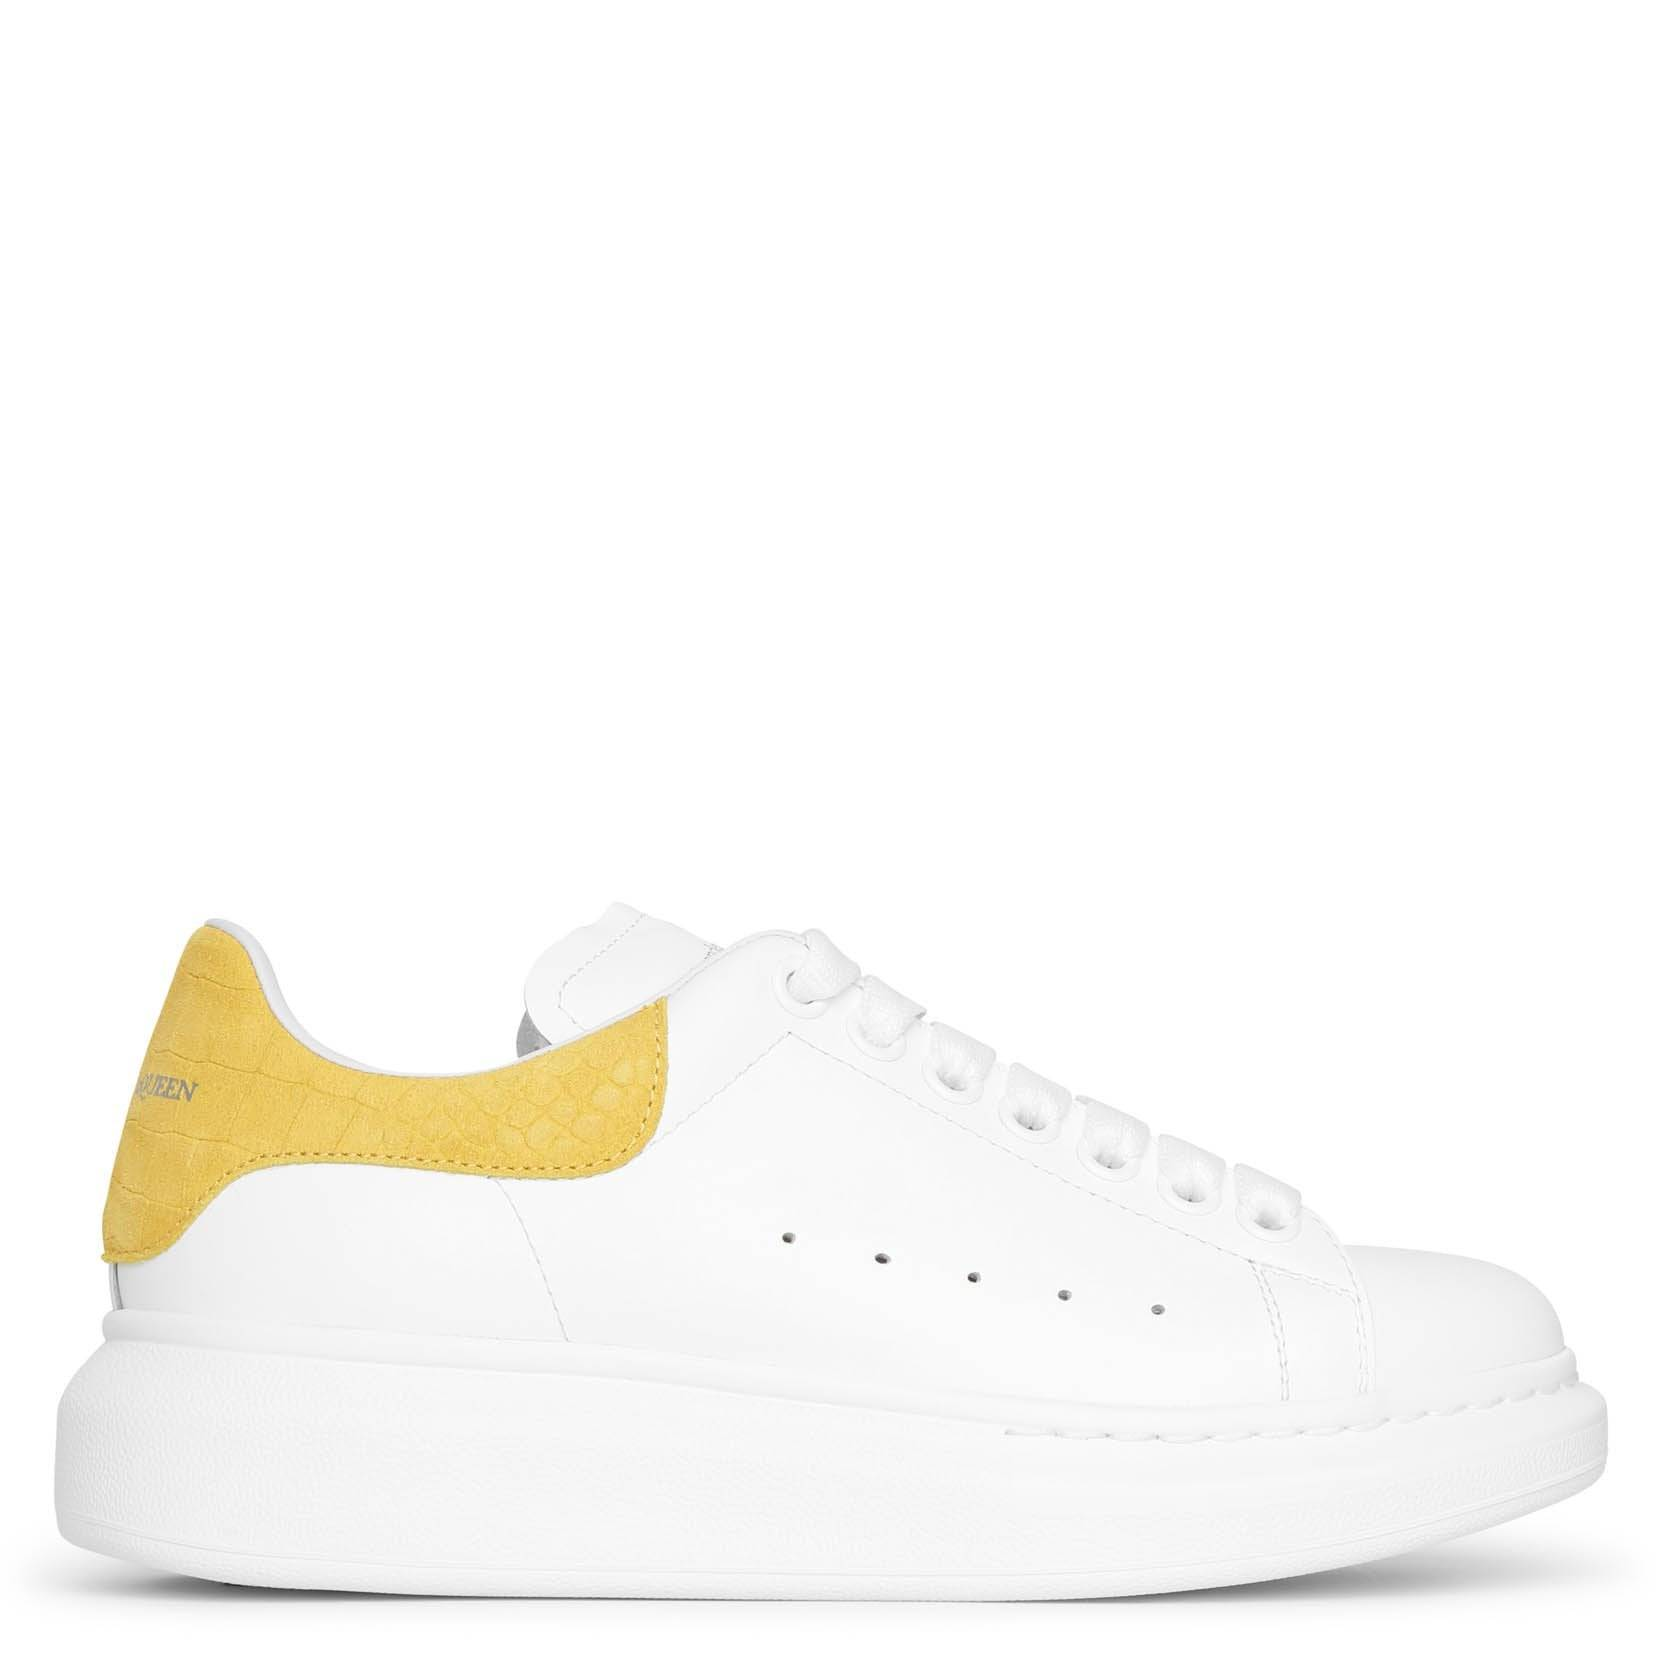 Alexander McQueen White and yellow printed suede classic sneakers  - white/yellow - female - Size: 36.5